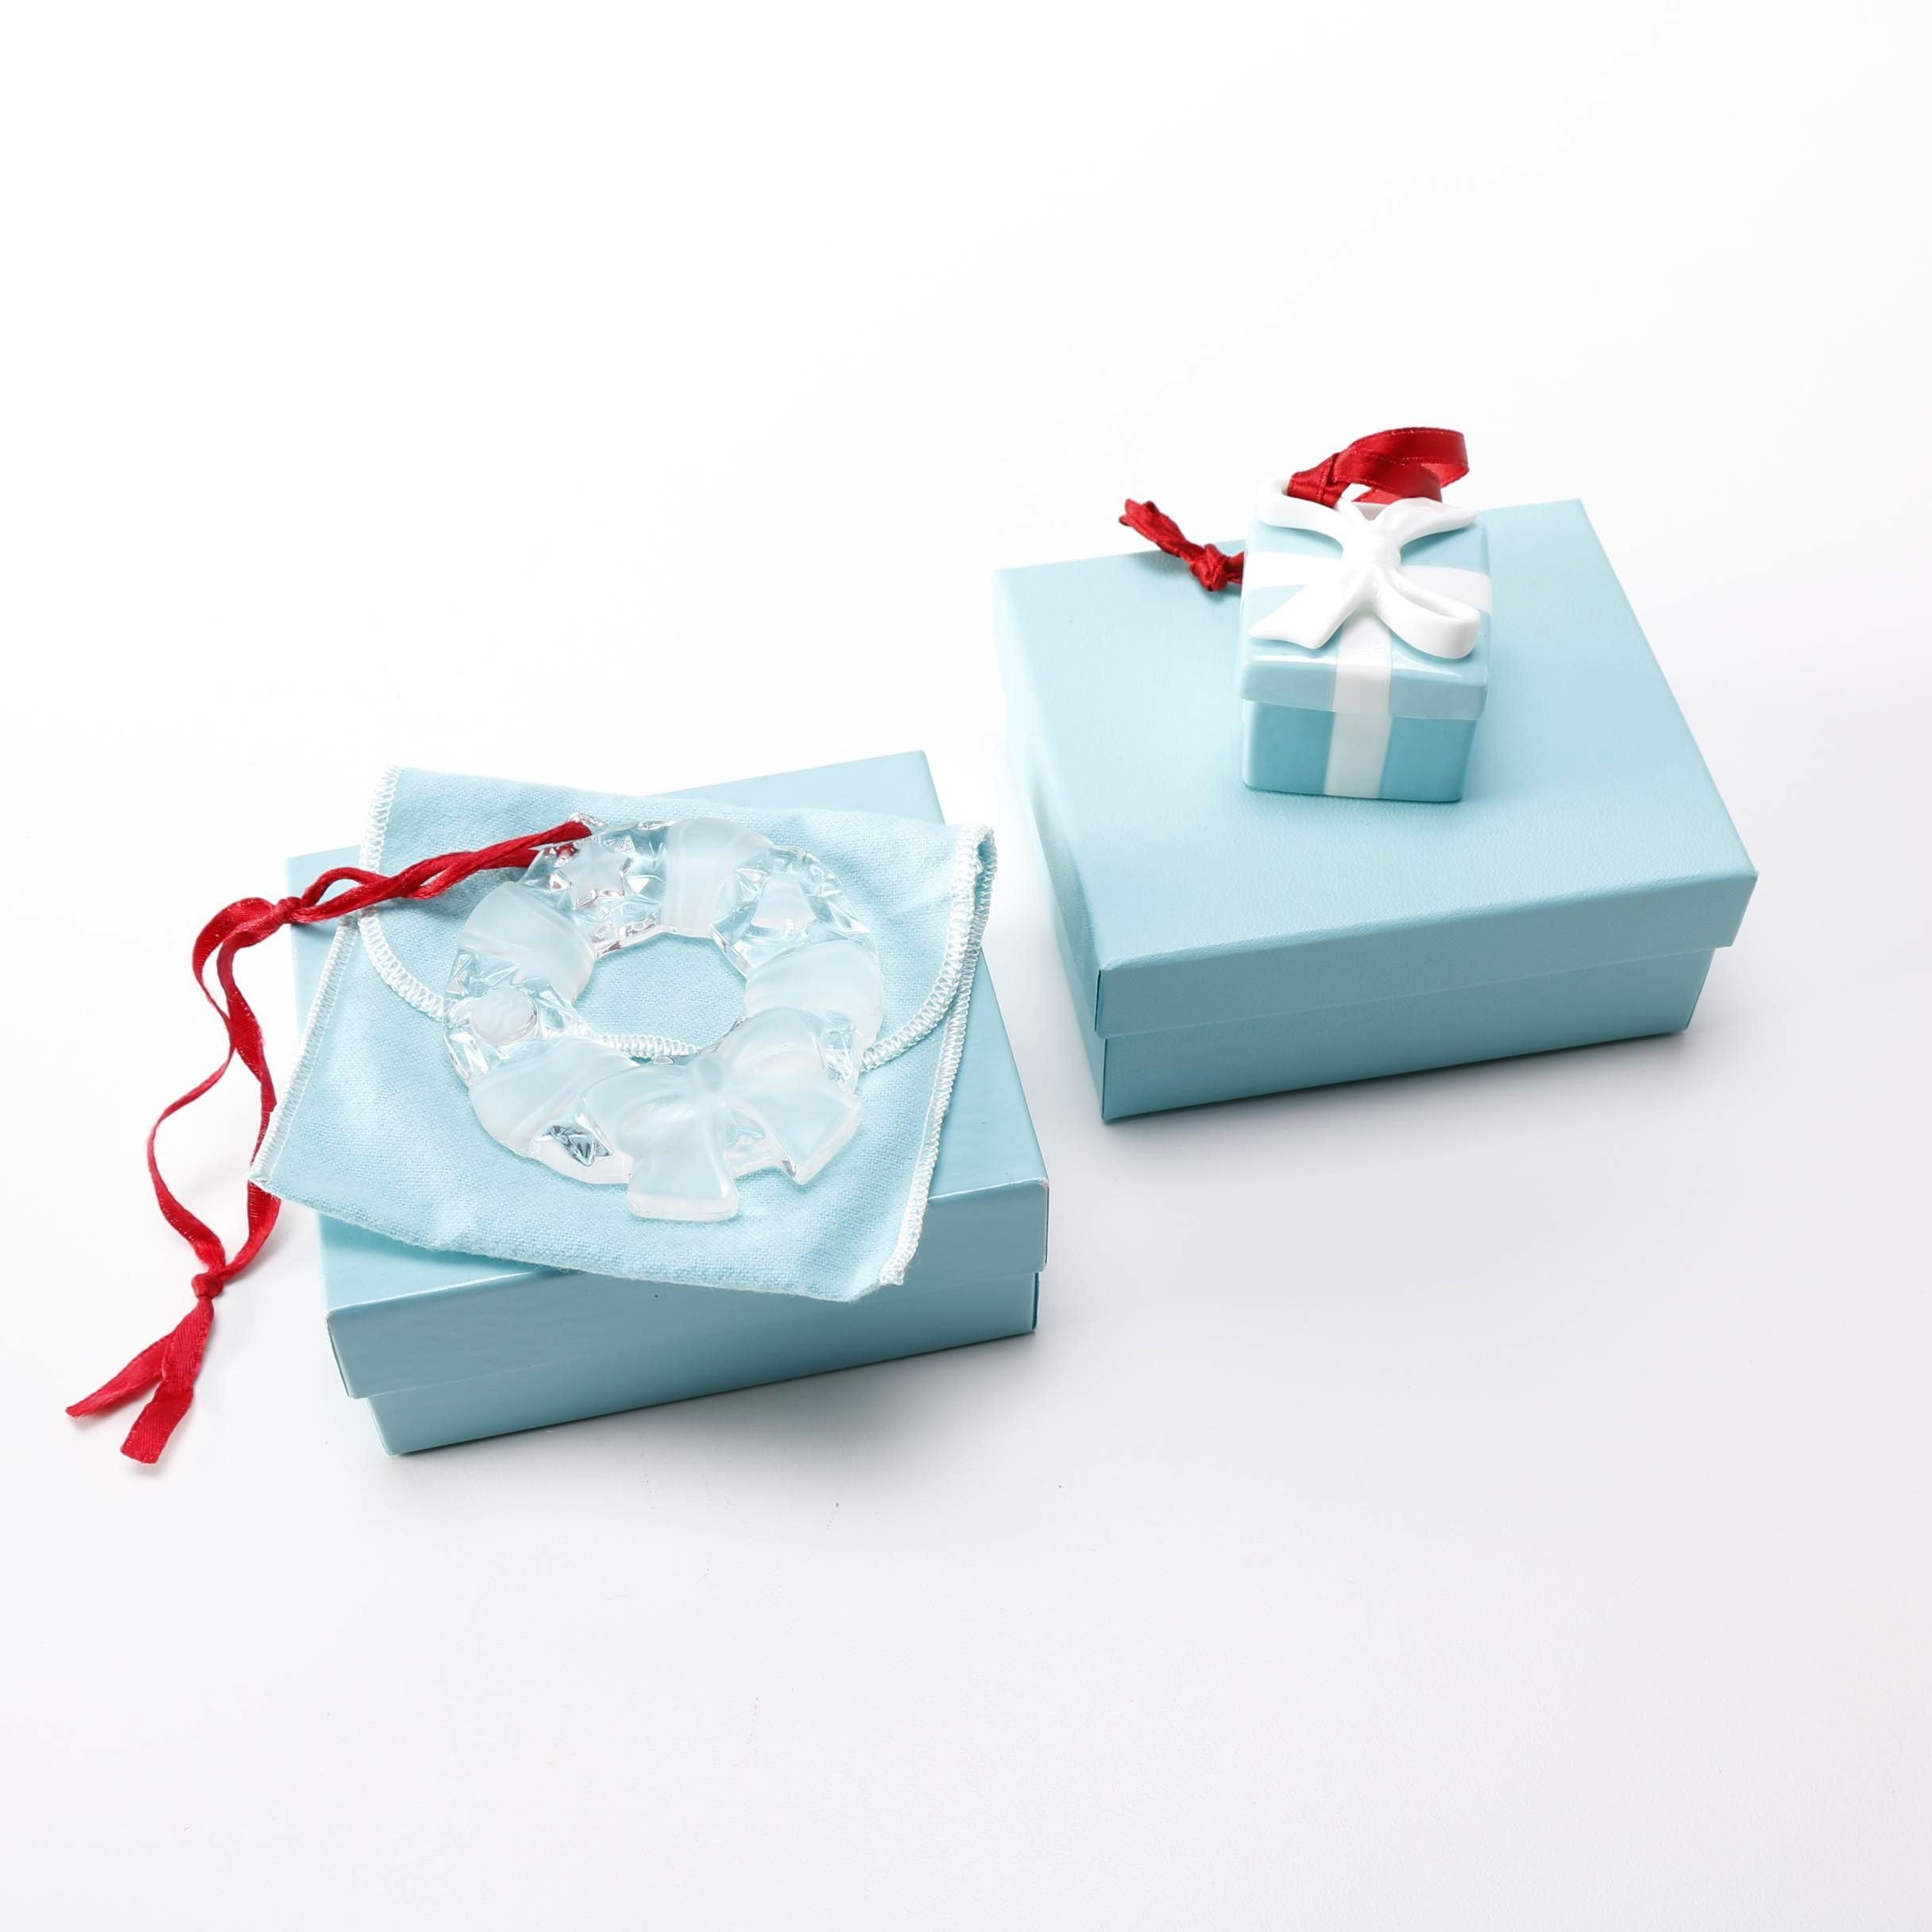 Tiffany & Co. Ornaments Including Porcelain Box and Crystal Wreath